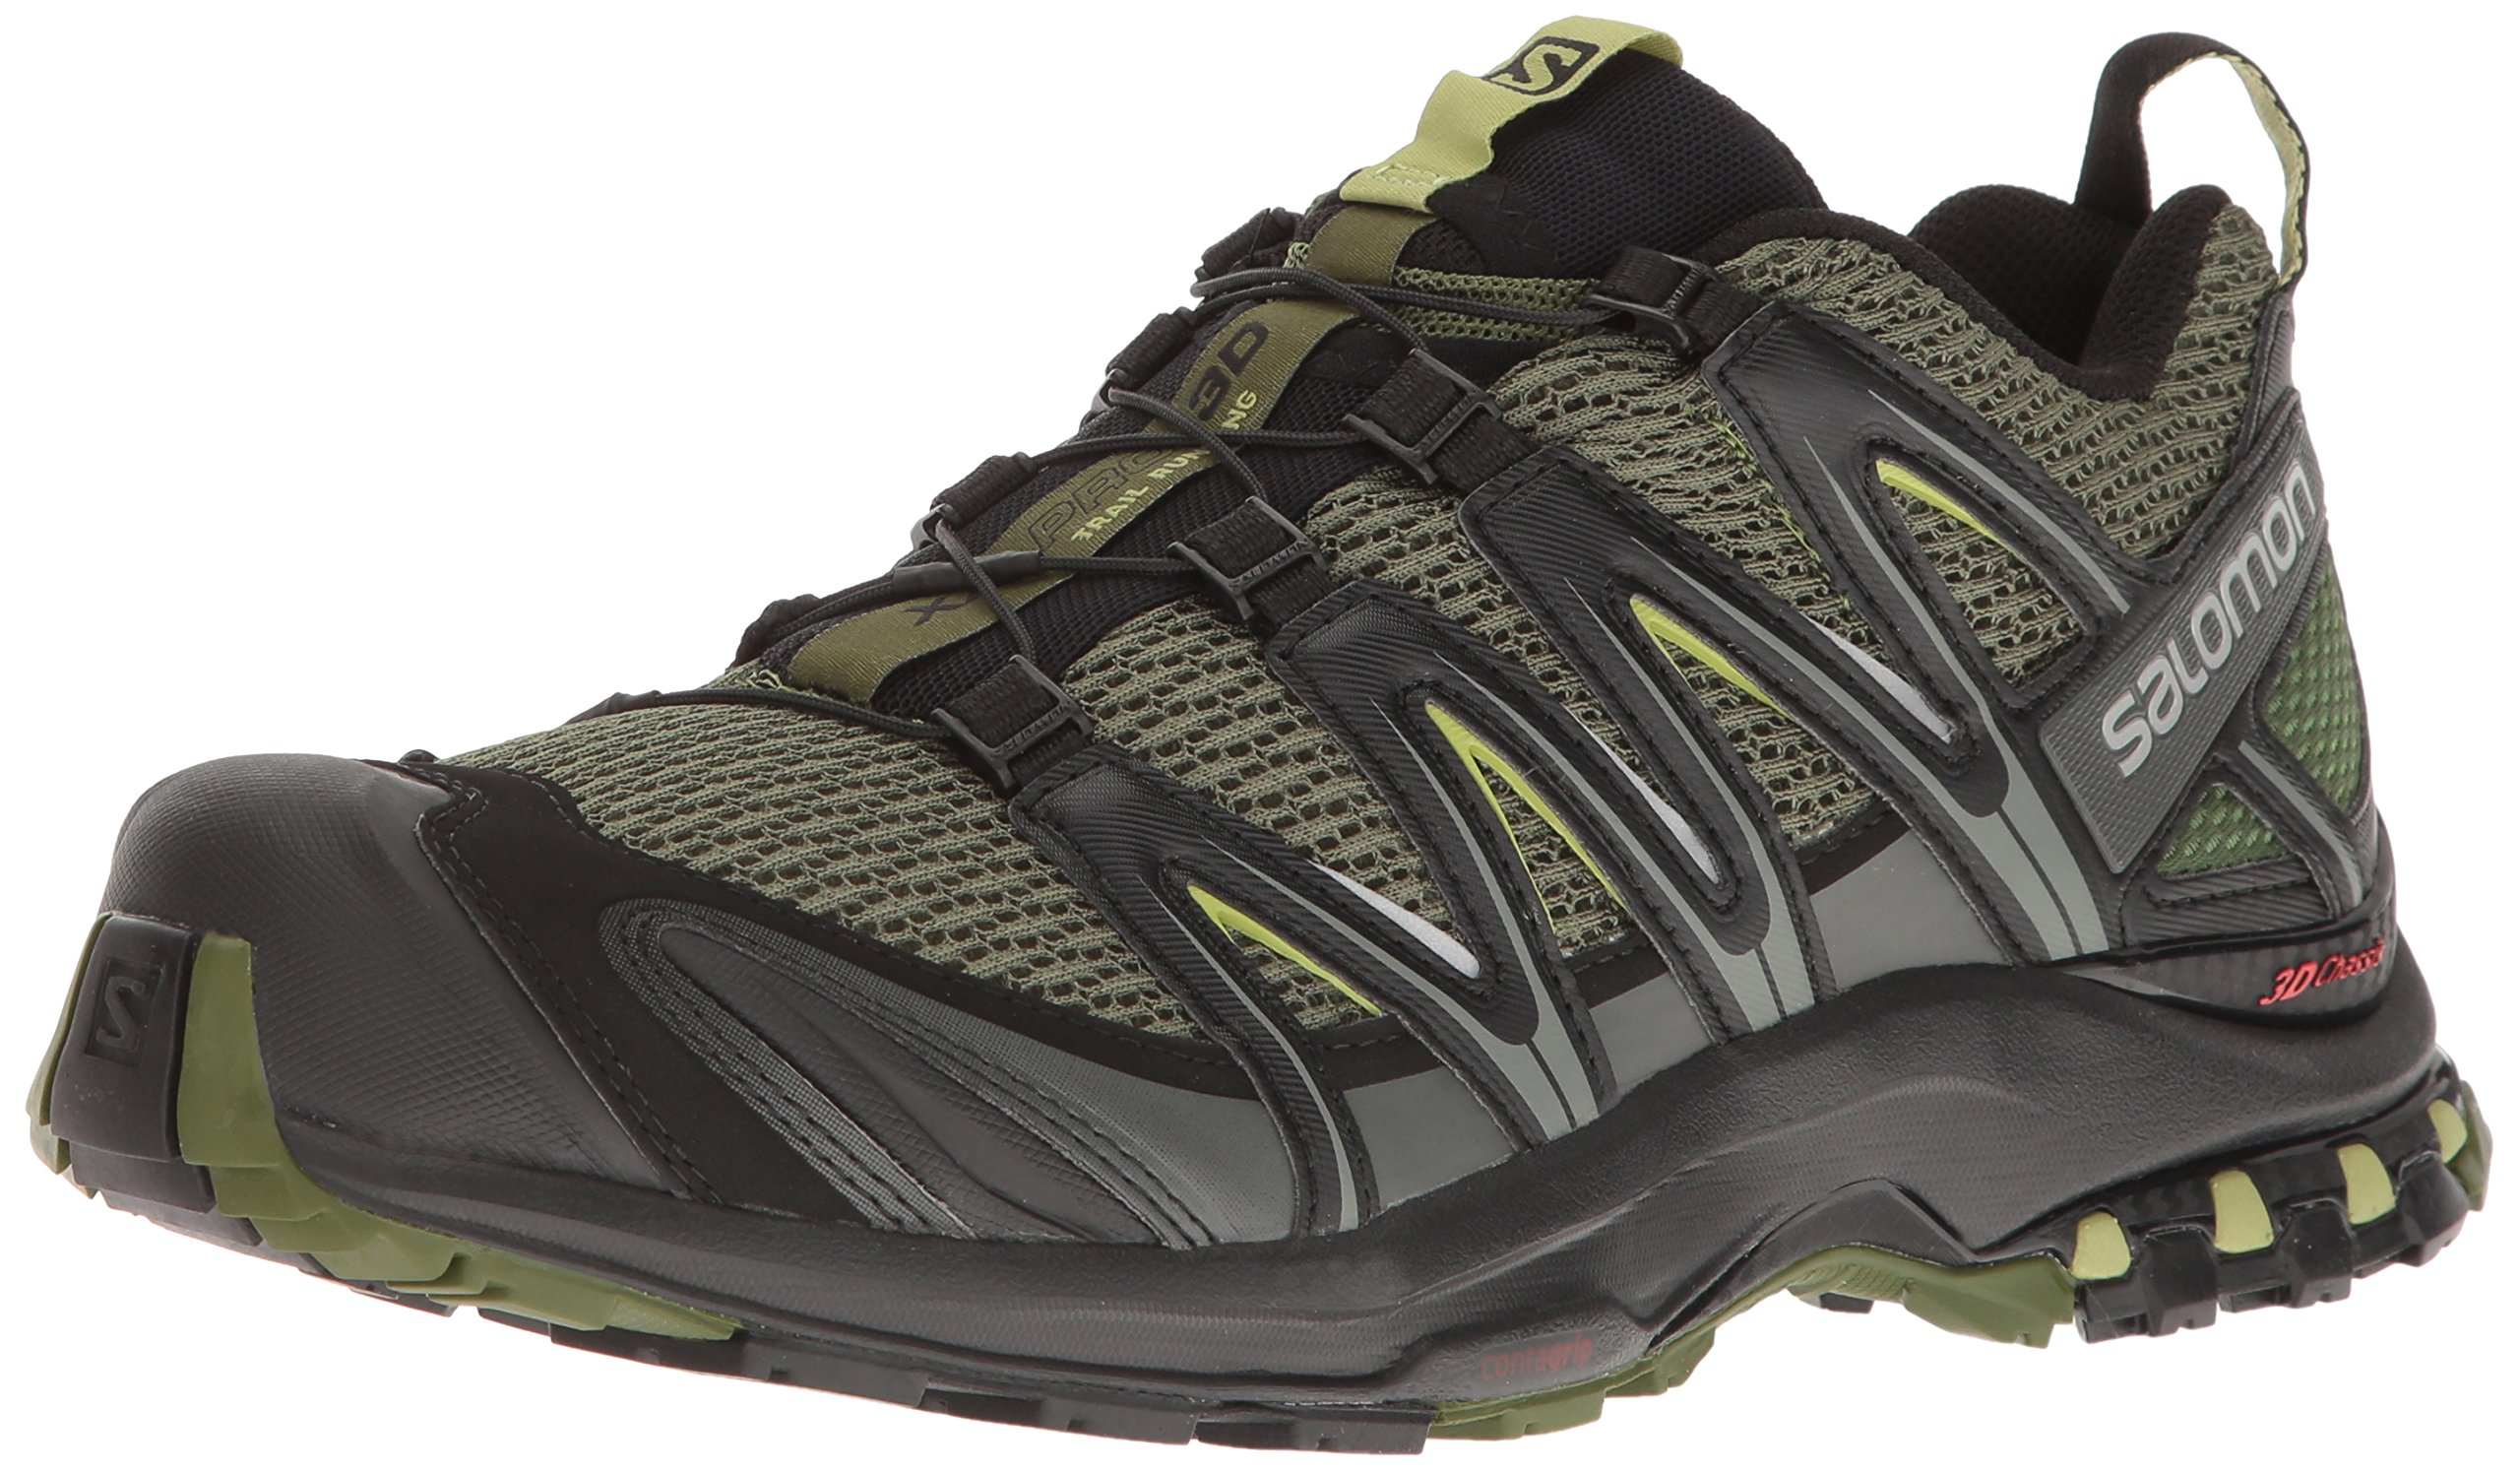 Salomon Men's XA PRO 3D Trail Runner, Chive, 8 M US by SALOMON